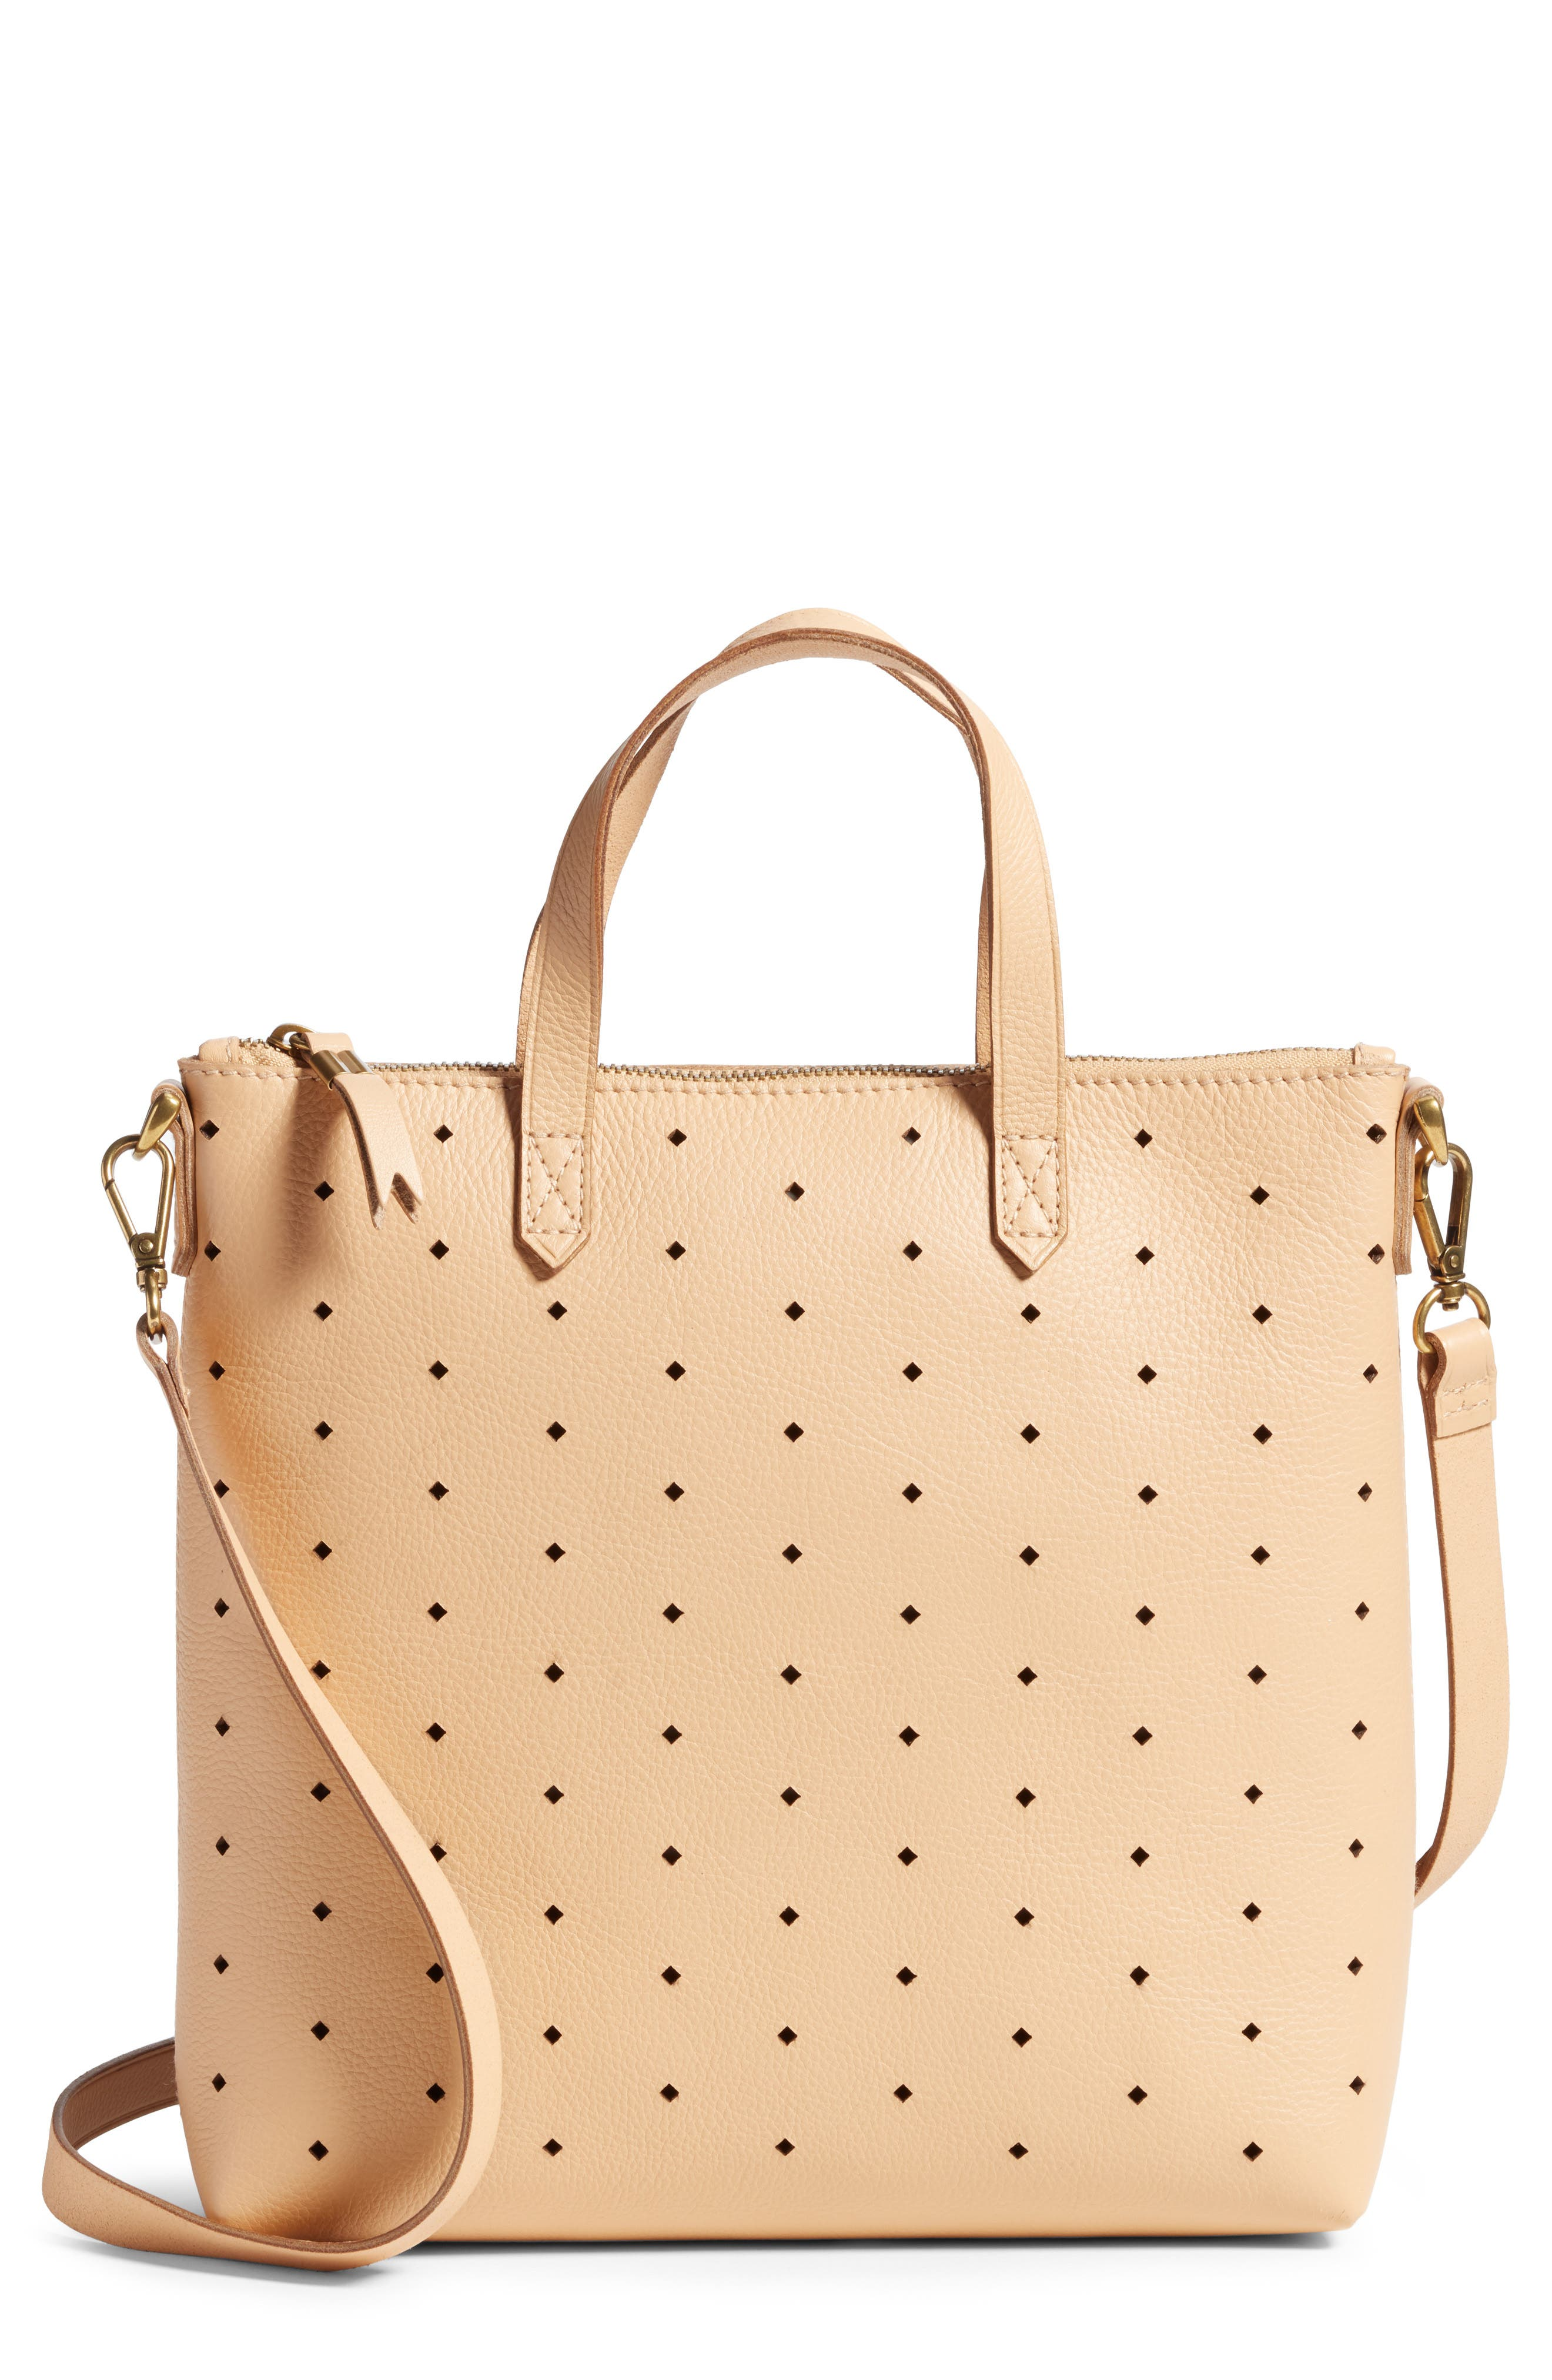 MADEWELL,                             Mini Transport Perforated Leather Crossbody Bag,                             Main thumbnail 1, color,                             250